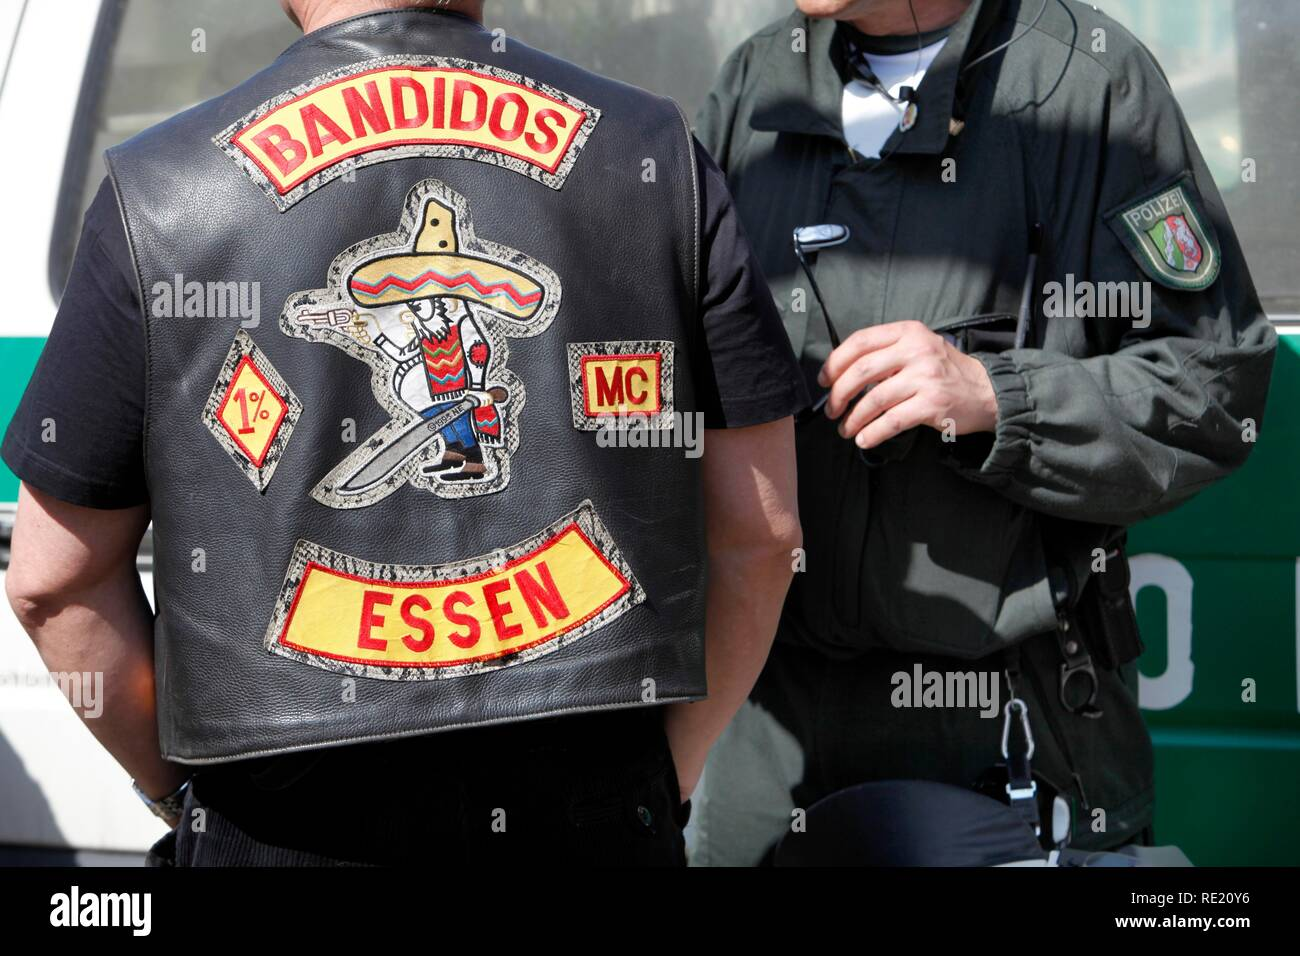 Motorcycle Club Patch Stock Photos & Motorcycle Club Patch